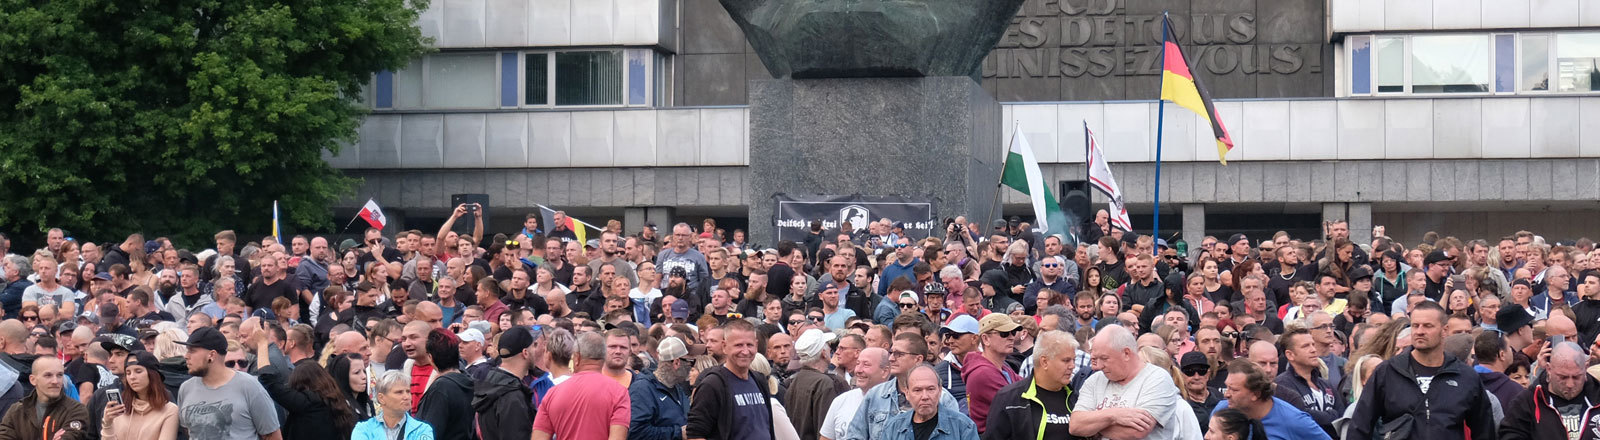 Eine Demonstration in Chemnitz